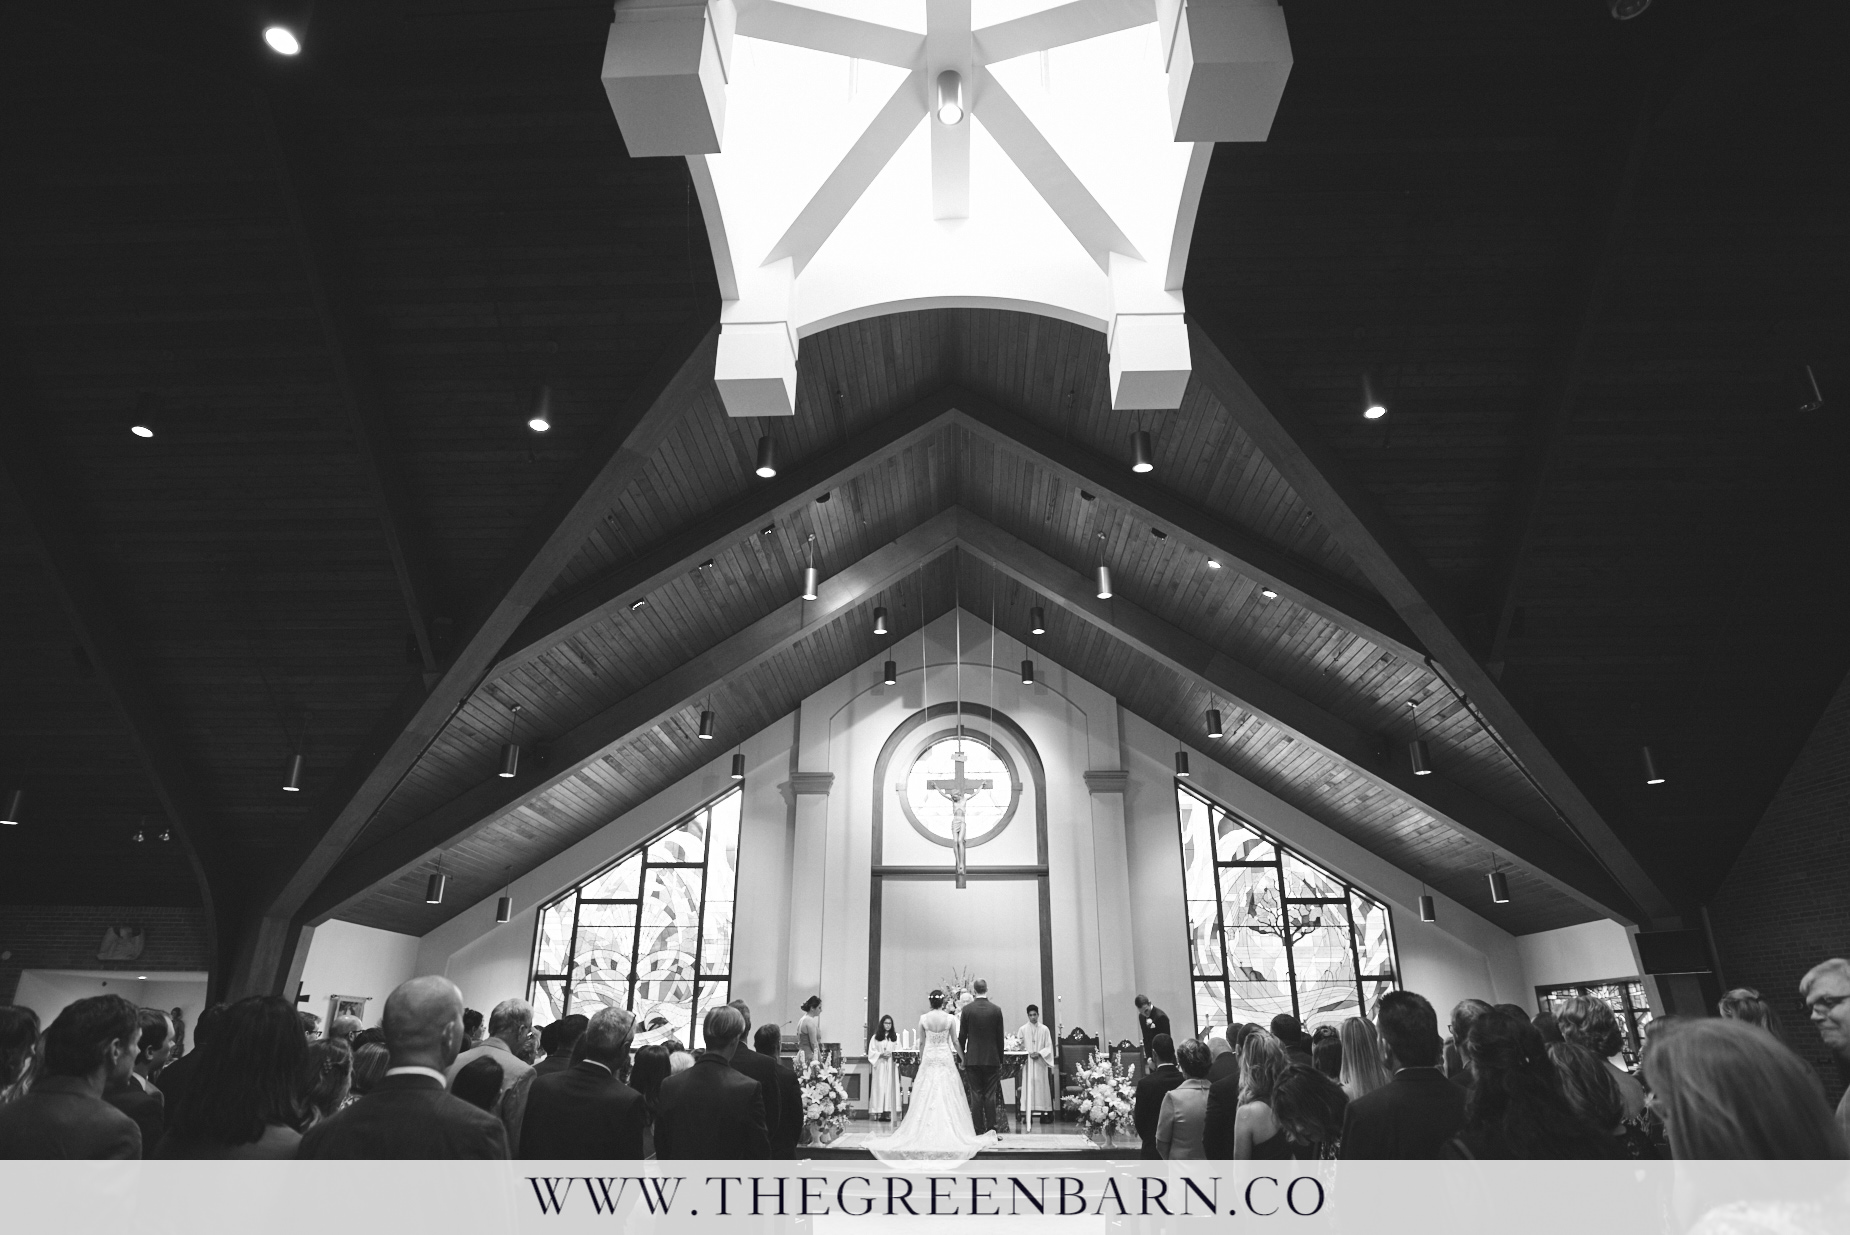 Black and White Church Wedding Ceremony at St Rose of Lima Parish Photo by Cate Bligh of The Green Barn Wedding Photography LLC